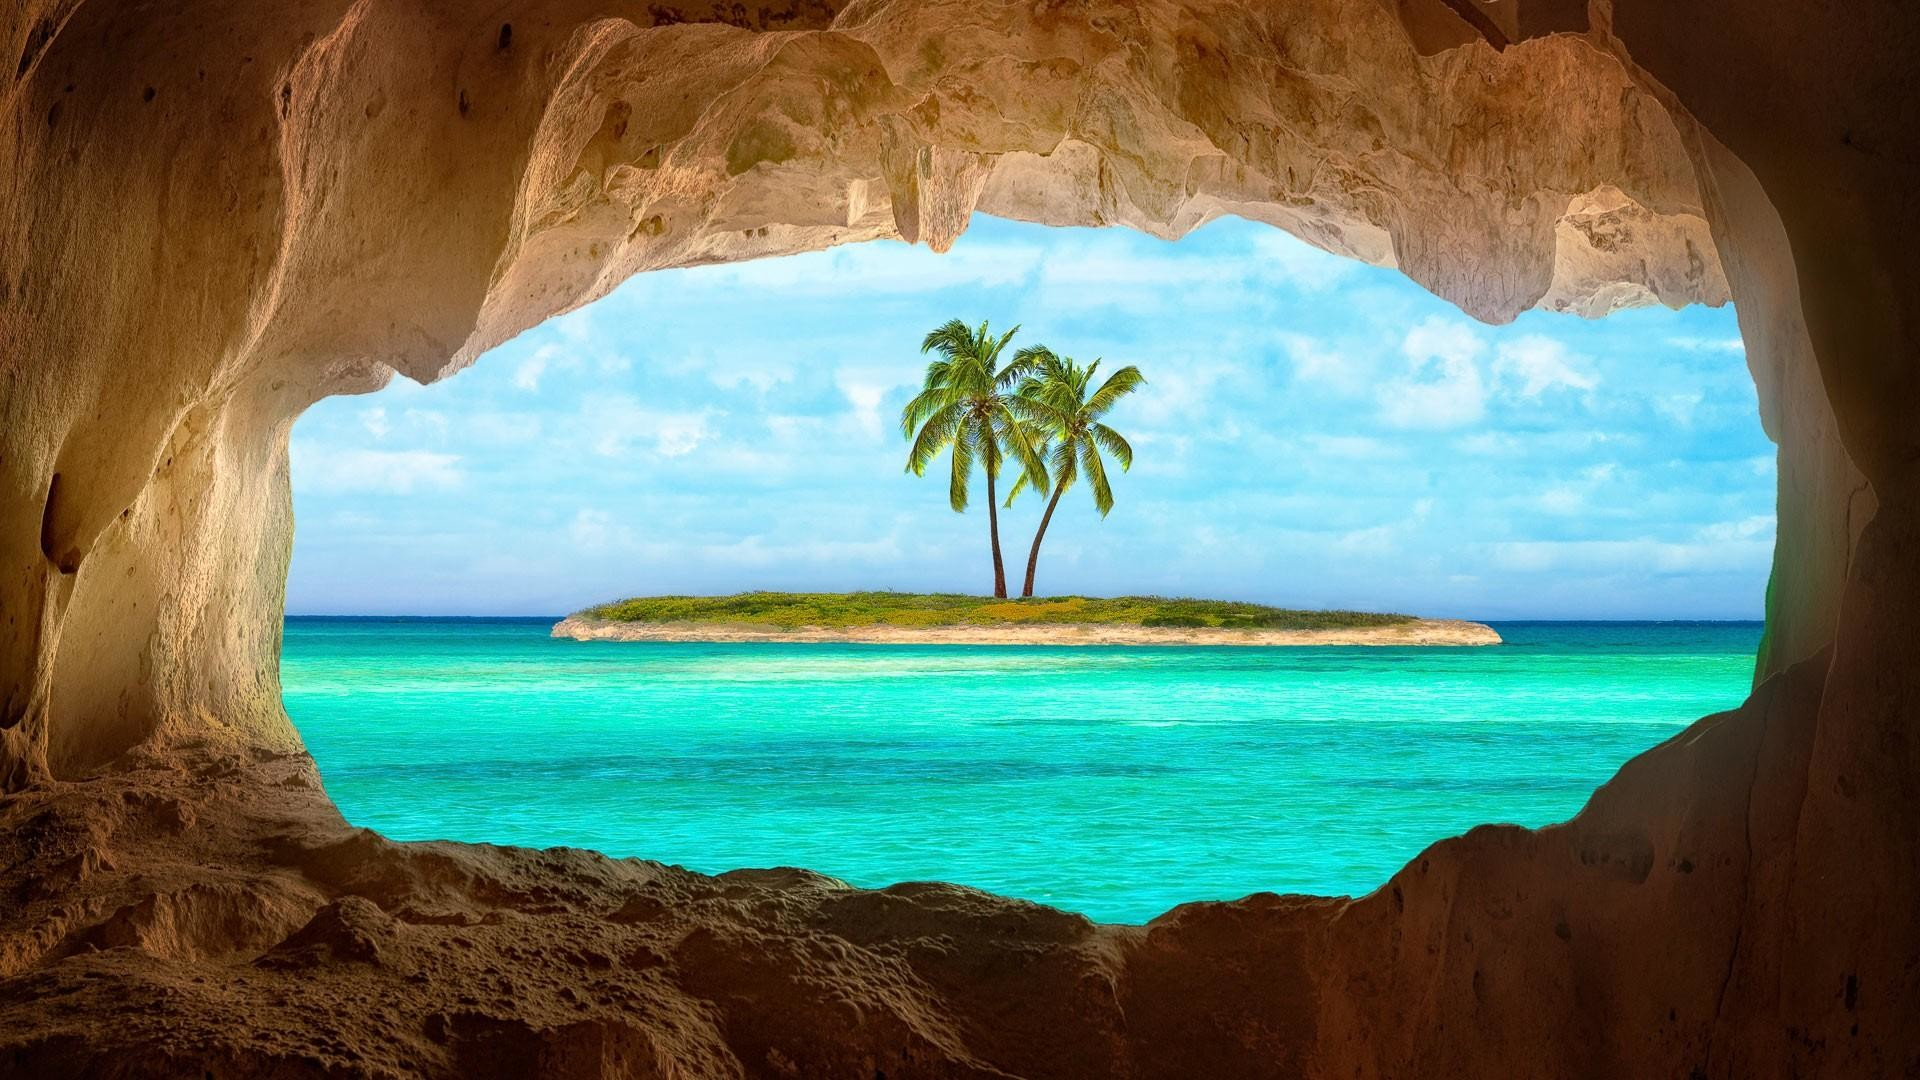 Res: 1920x1080, Old Indian Cave On Turks And Caicos Island Wallpaper | Wallpaper Studio 10  | Tens of thousands HD and UltraHD wallpapers for Android, Windows and Xbox